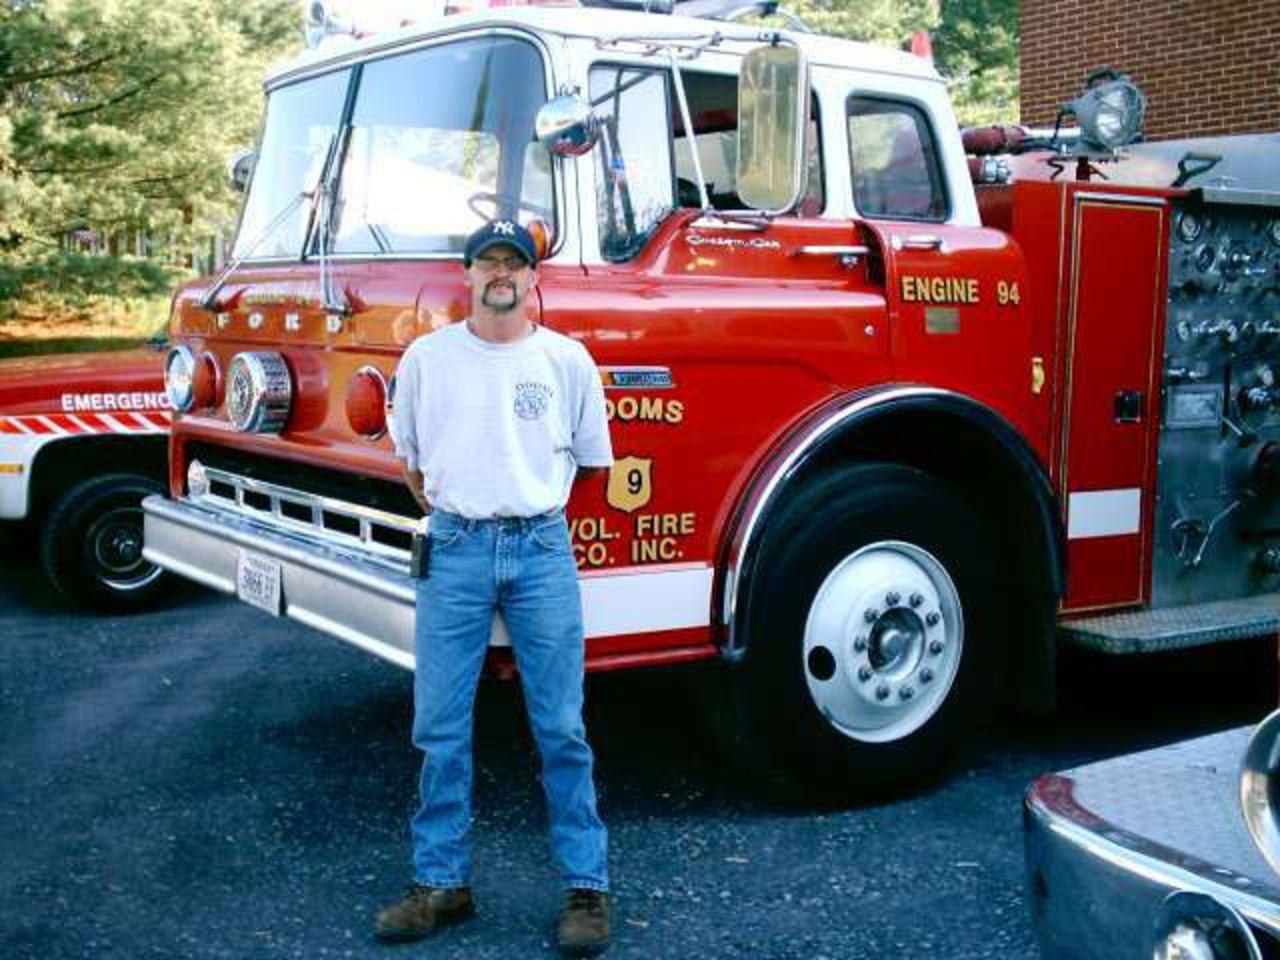 ex dooms vol fire dept 1975 ford c 8000 seagrave pumper tanker ...